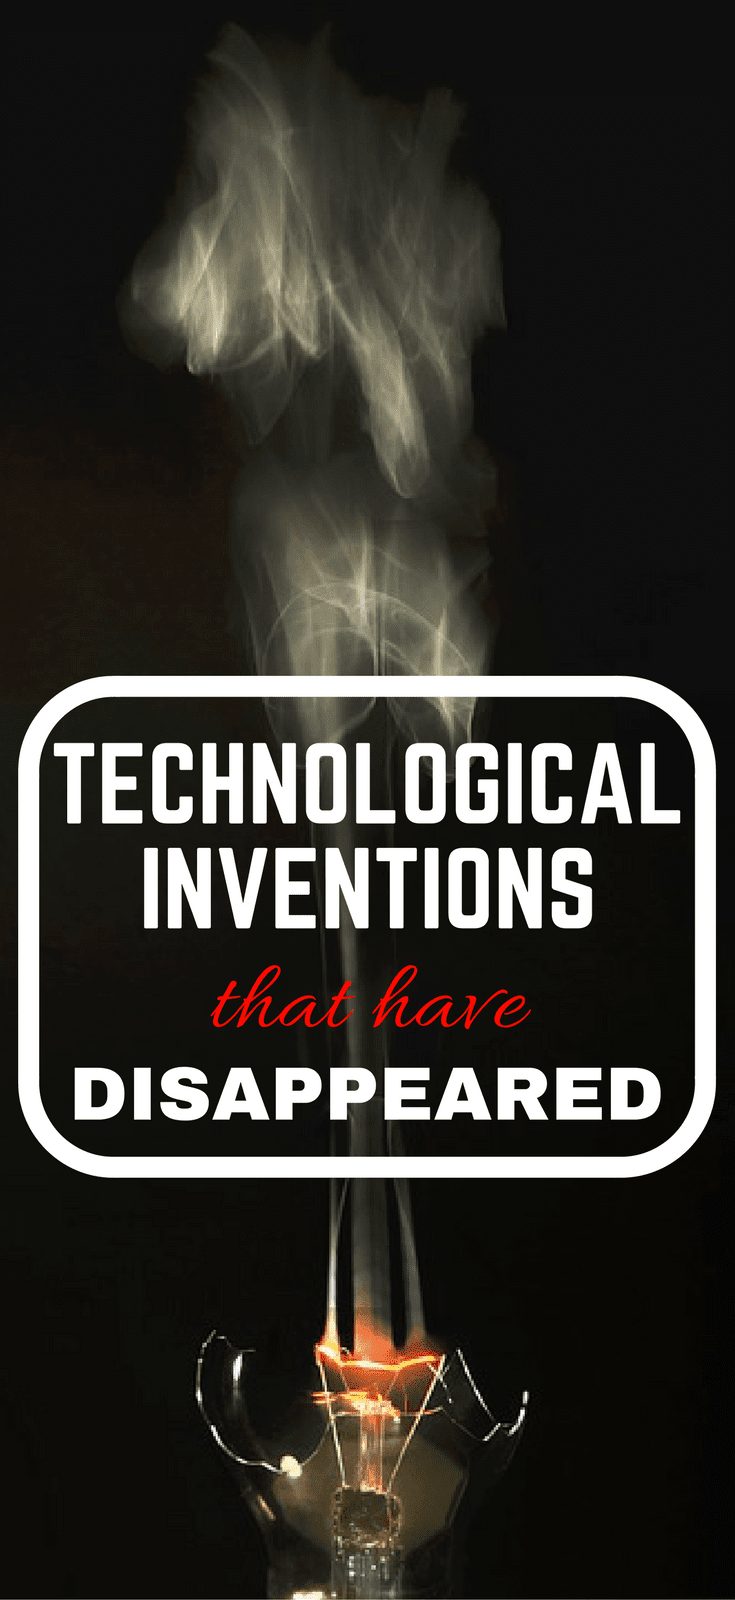 Technological Inventions That Have Disappeared